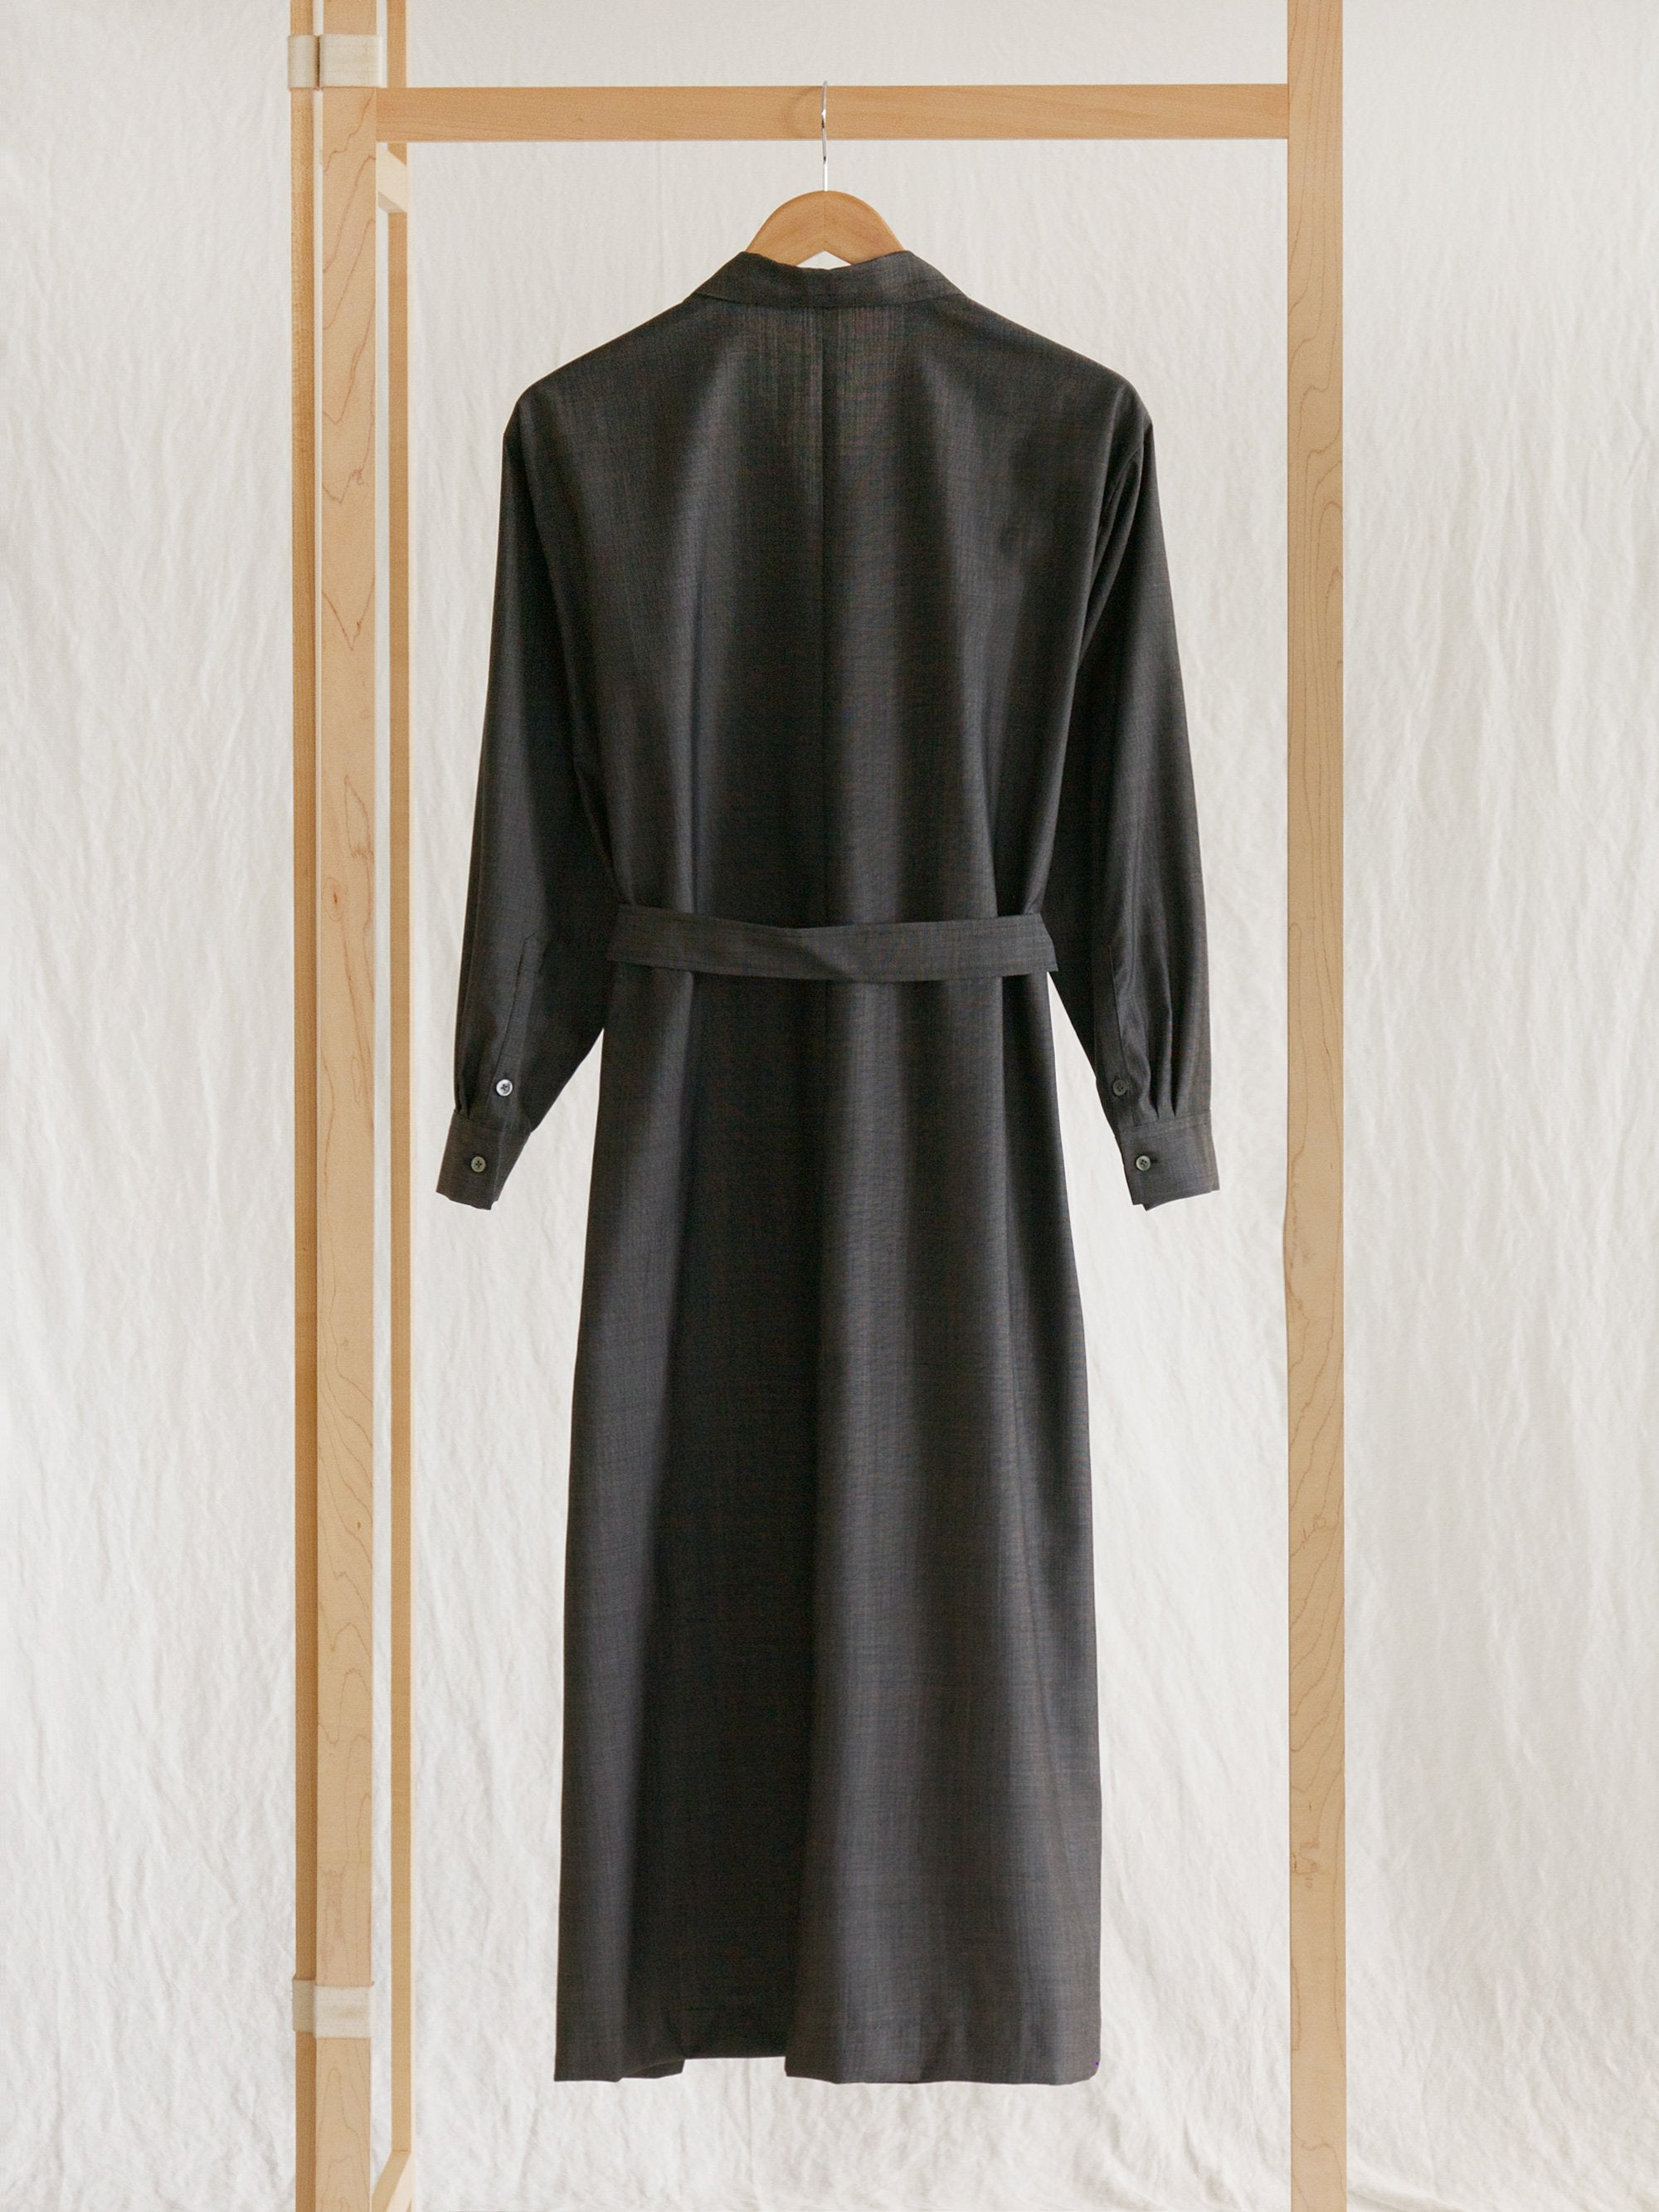 Namu Shop - Phlannel Wool Silk Open Collared Long Dress